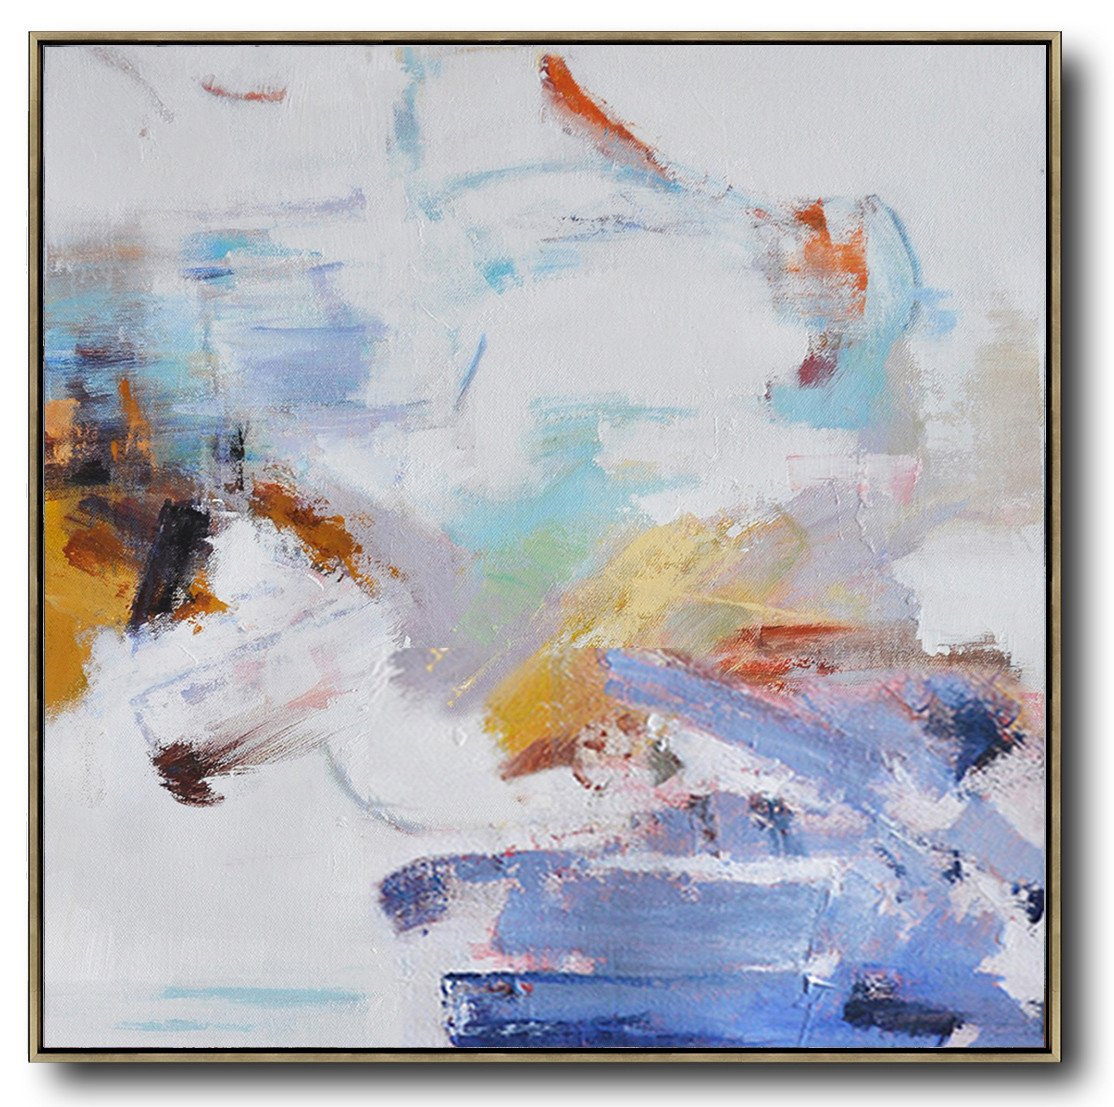 Large Abstract Art,Oversized Abstract Oil Painting,Large Colorful Wall Art,White,Blue,Gray,Yellow.etc